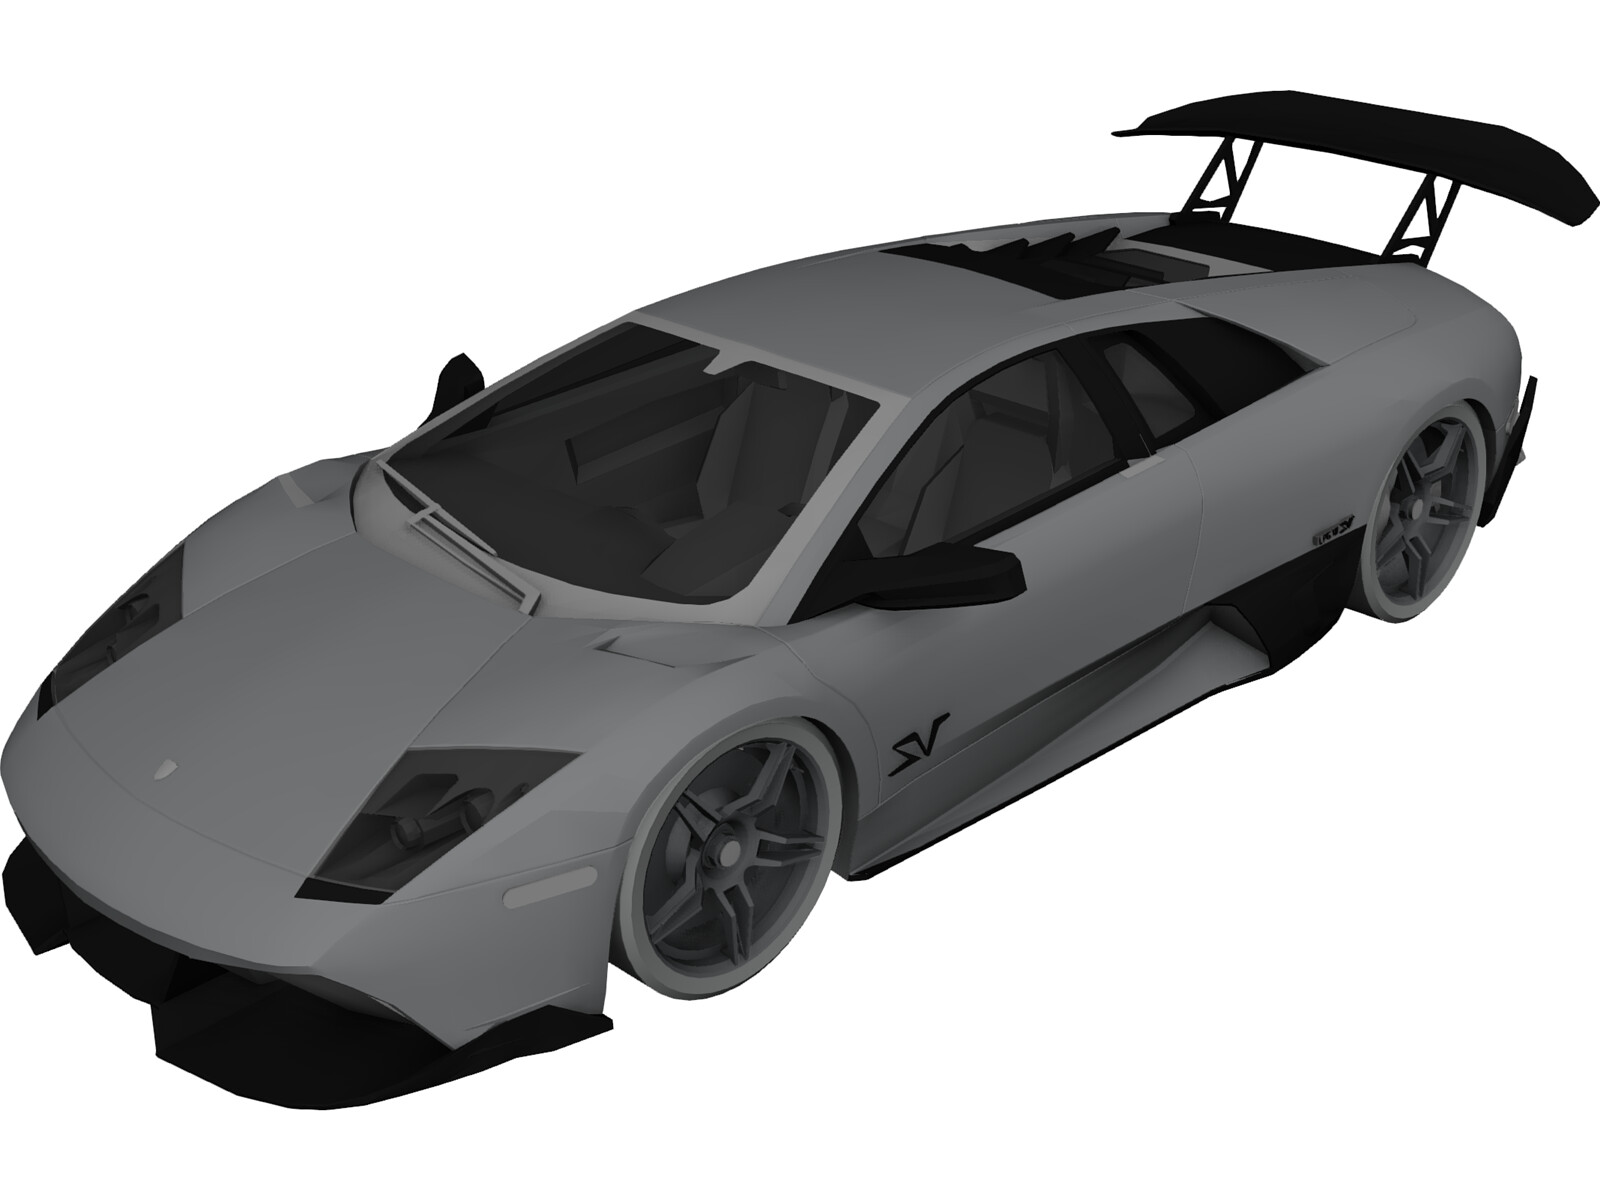 lamborghini murcielago lp670 4 sv 3d model 3d cad browser. Black Bedroom Furniture Sets. Home Design Ideas